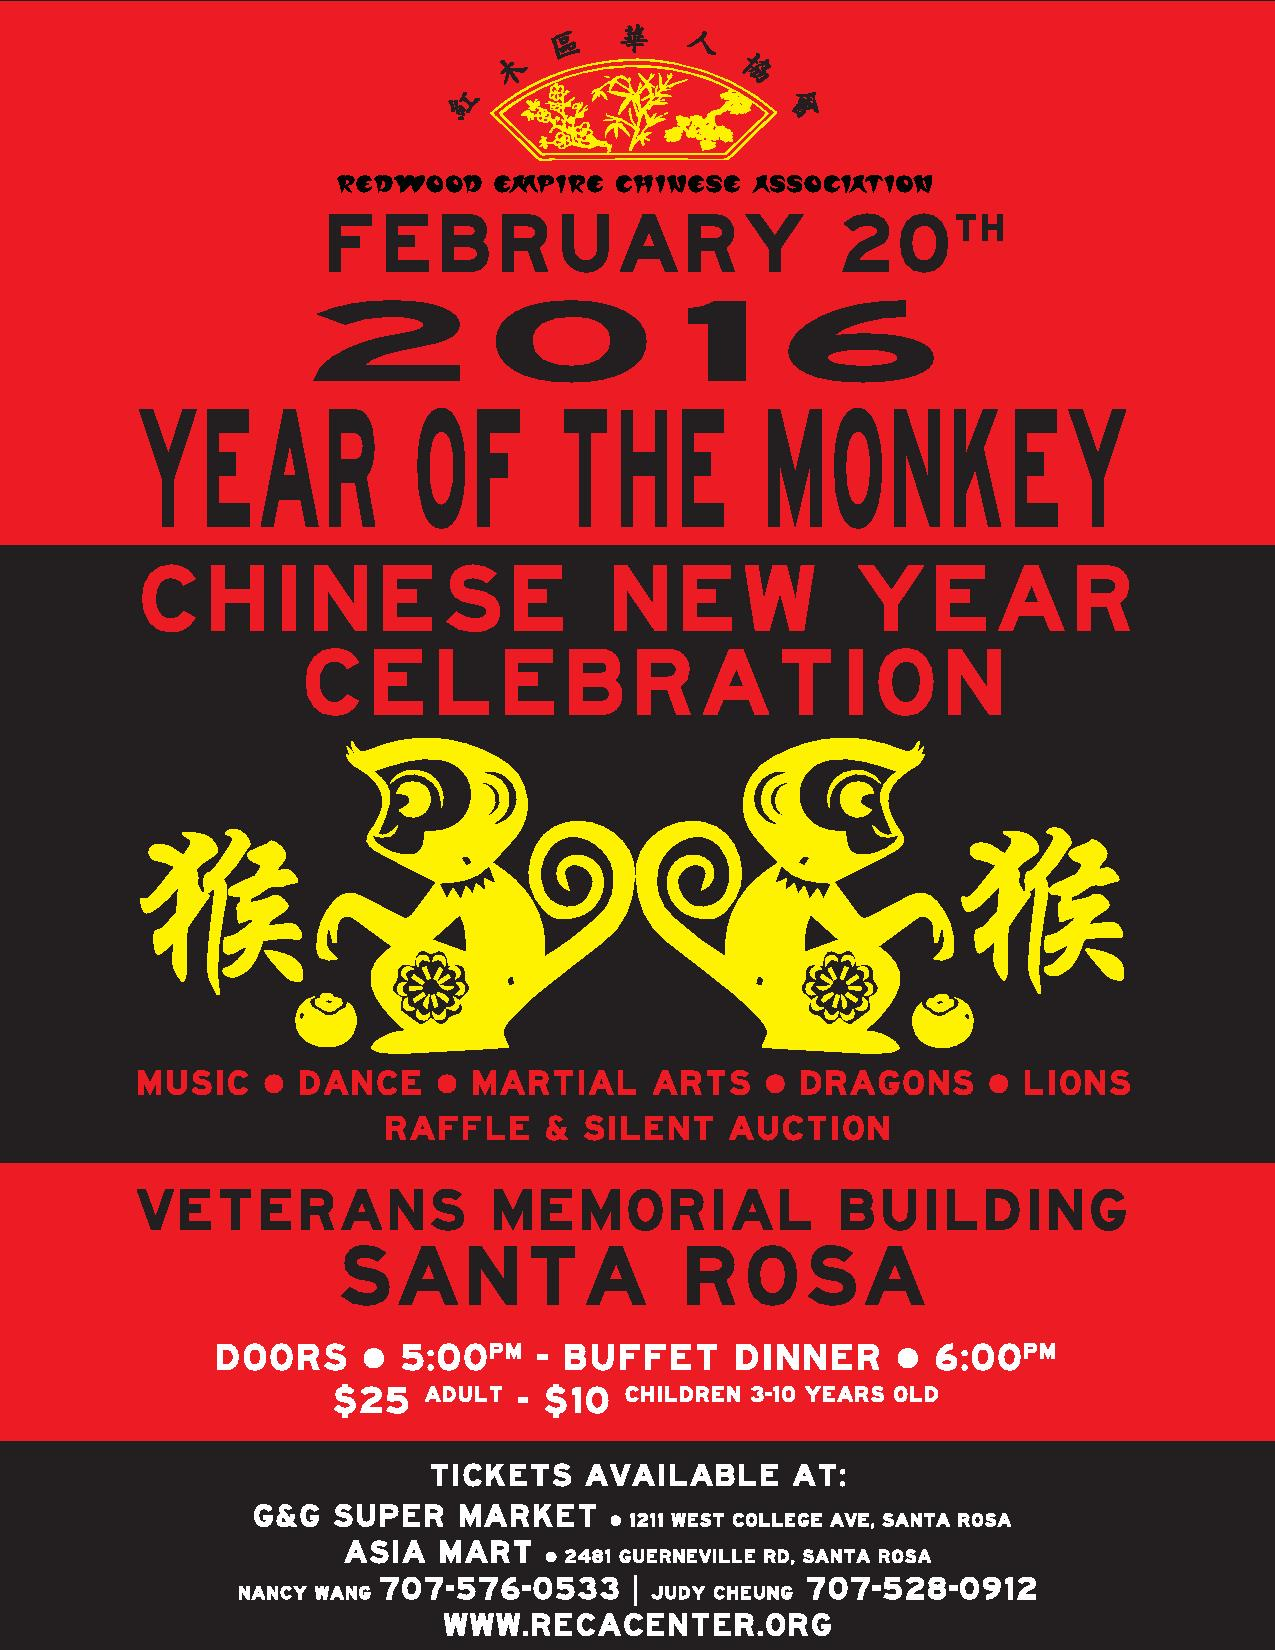 2/20/2016 Year of the Monkey Celebration poster